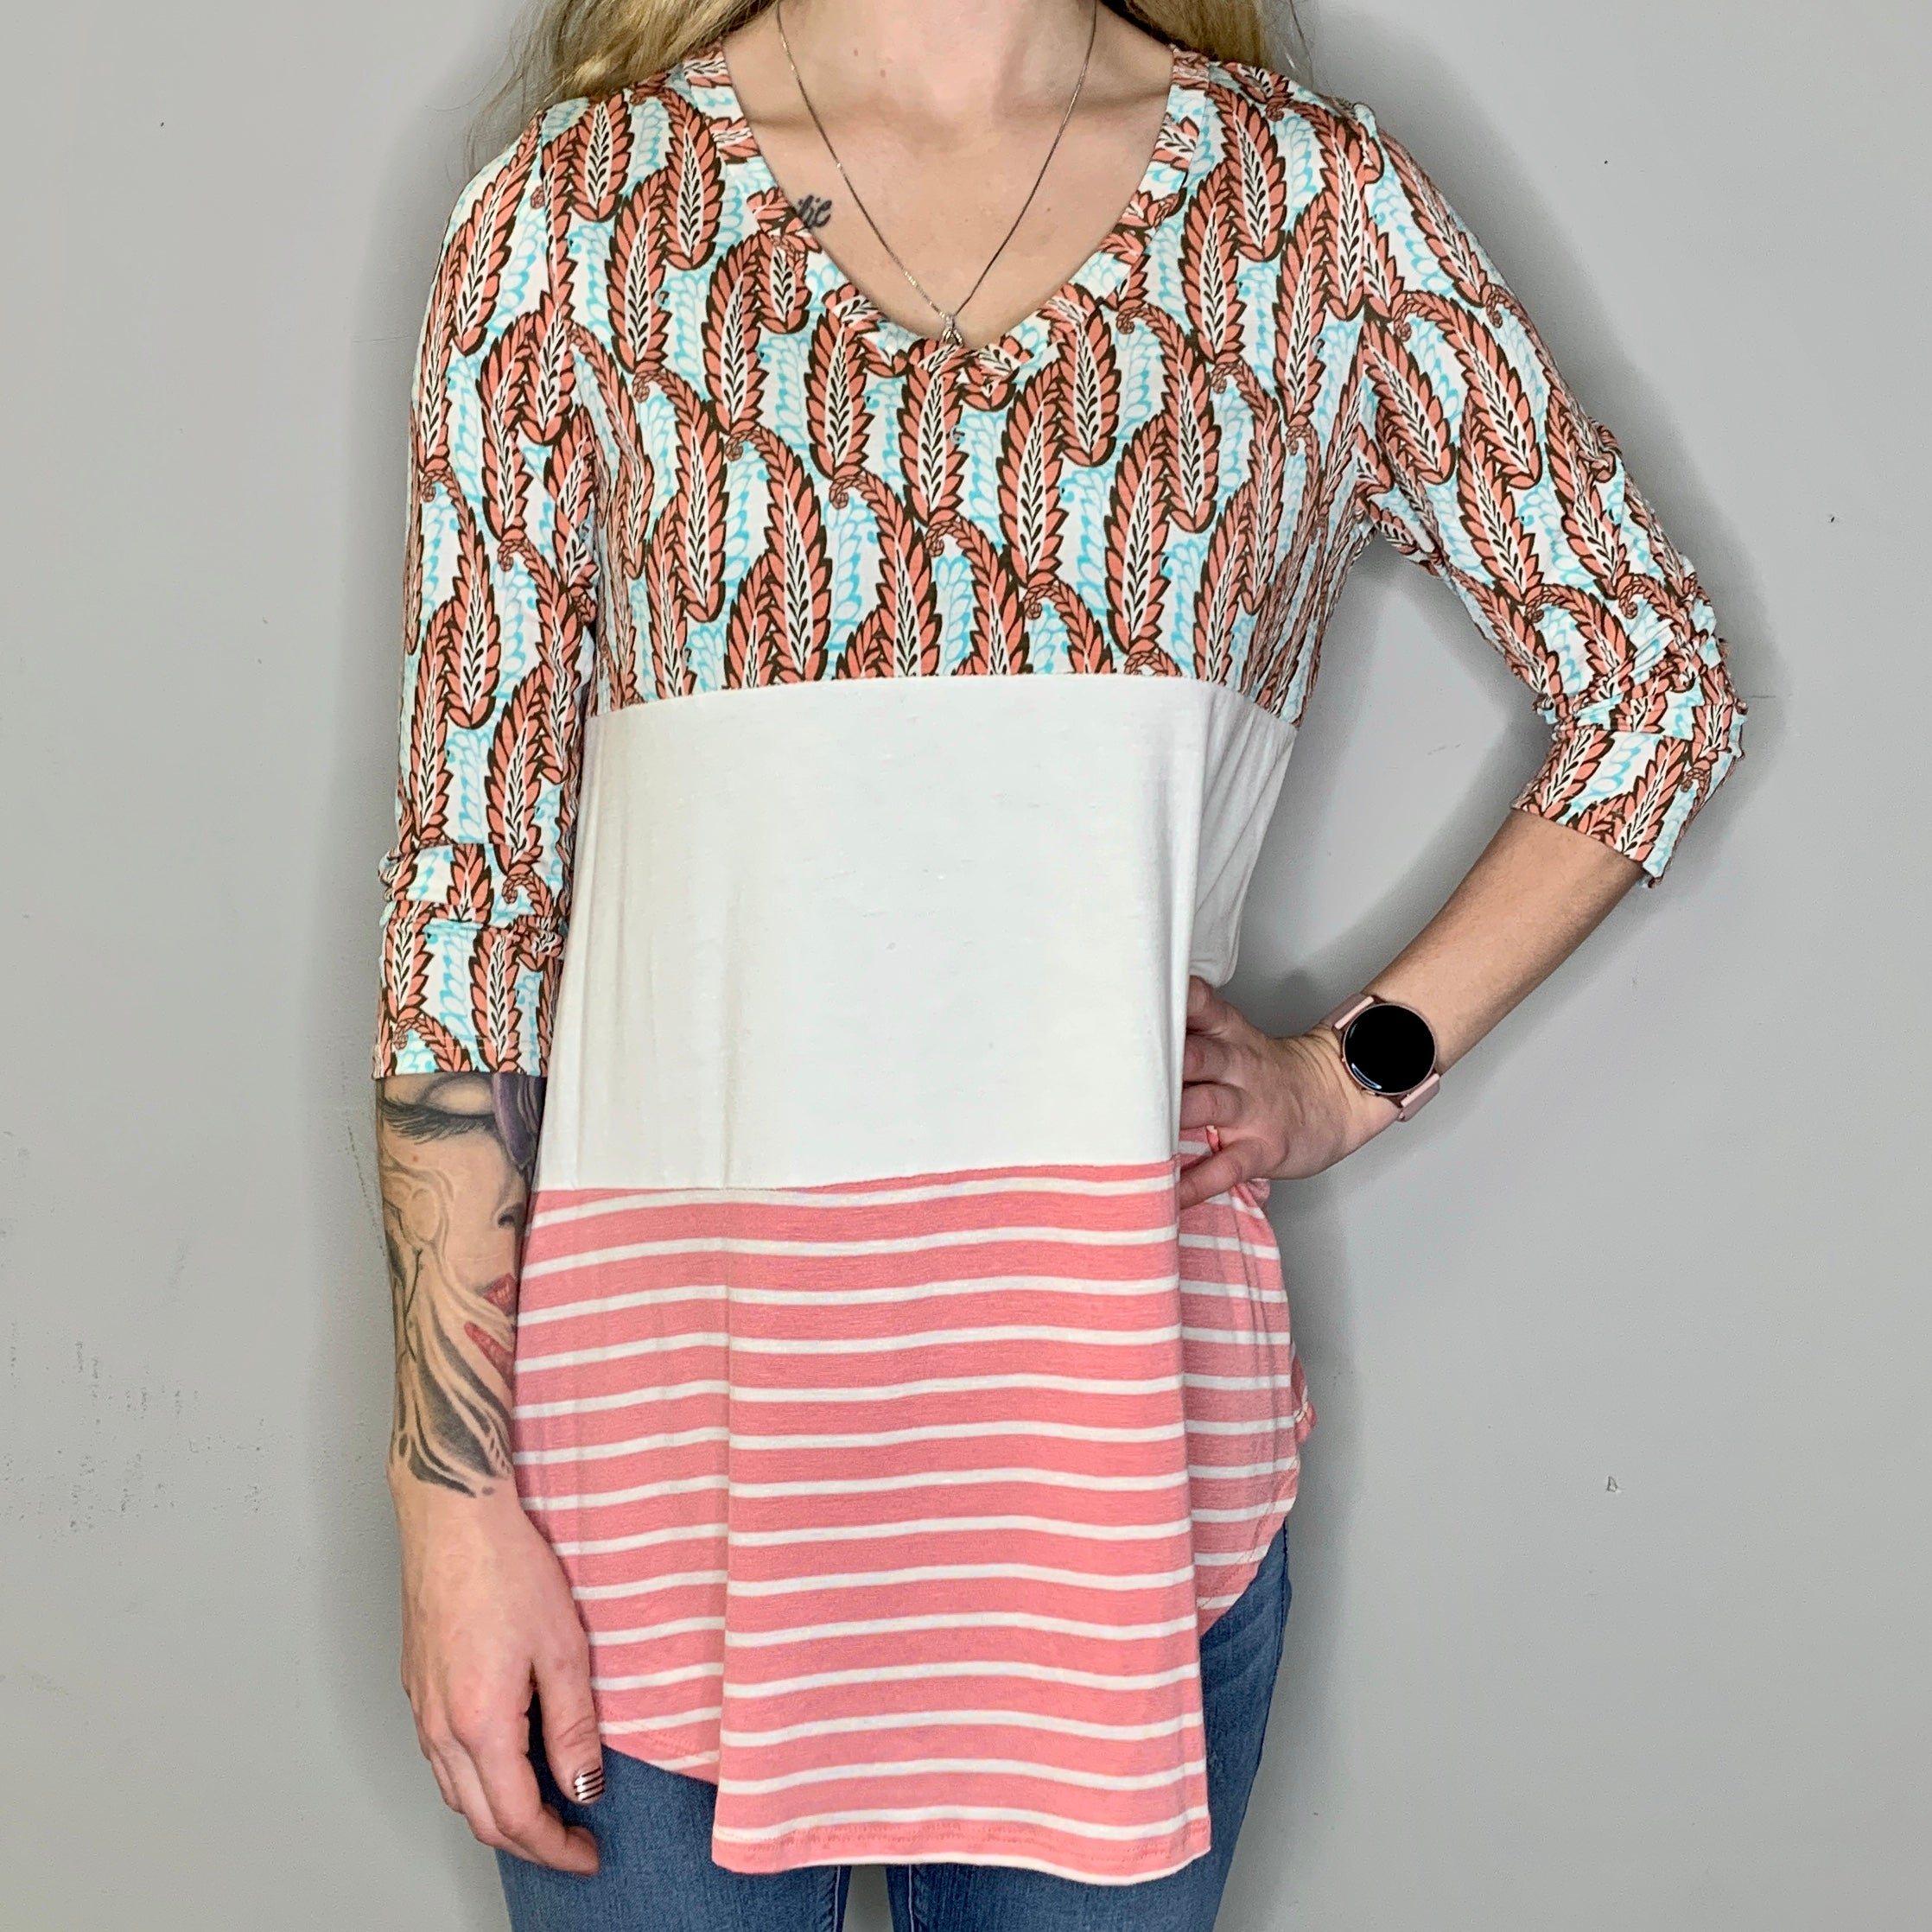 Coral & Turquoise Mixed Pattern 3/4 Sleeve Top